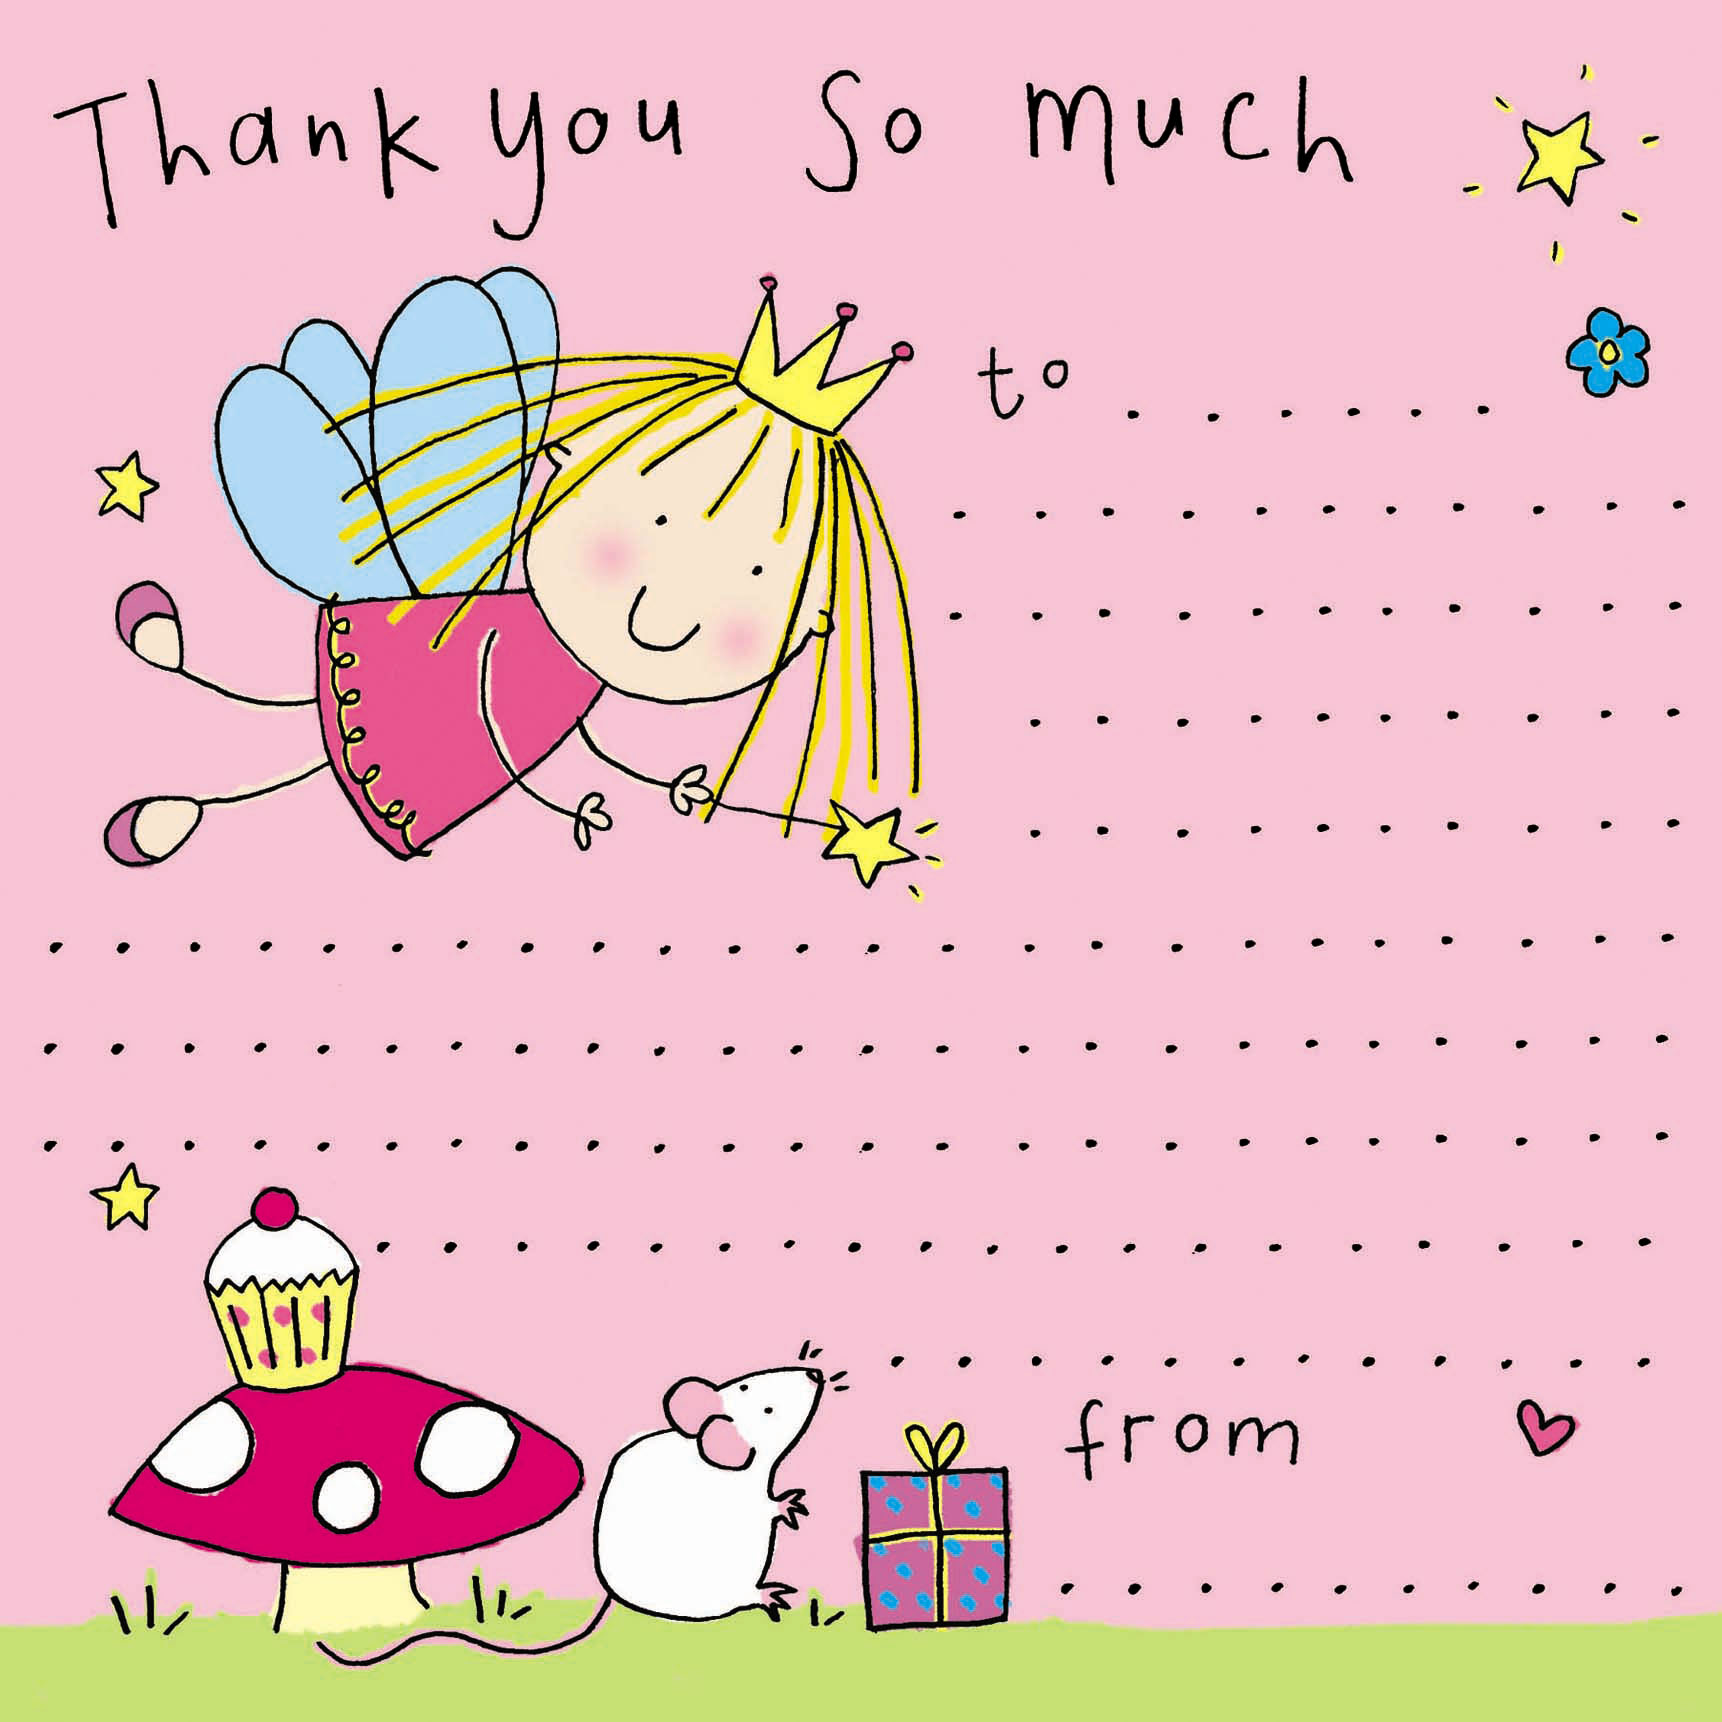 thank you notes for kids thank you cards for children kids thank thank you notes for kids thank you cards for children kids thank you notes kids birthday thank you notes kids thank you note